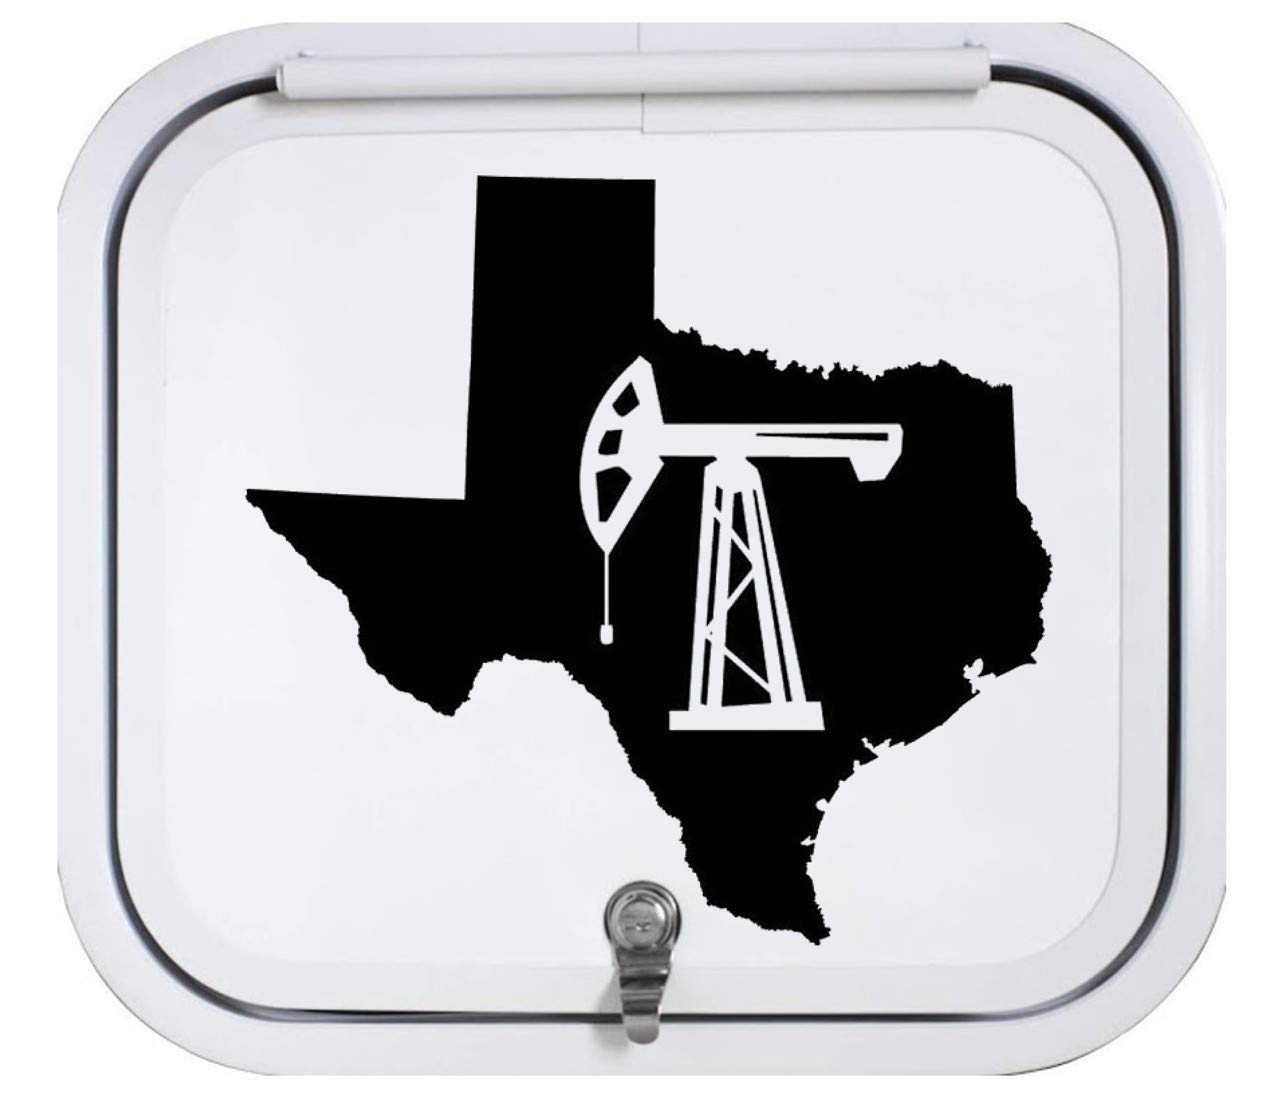 Texas Oil Pumpjack Black Decal Sticker 12.0 Inch BG 425